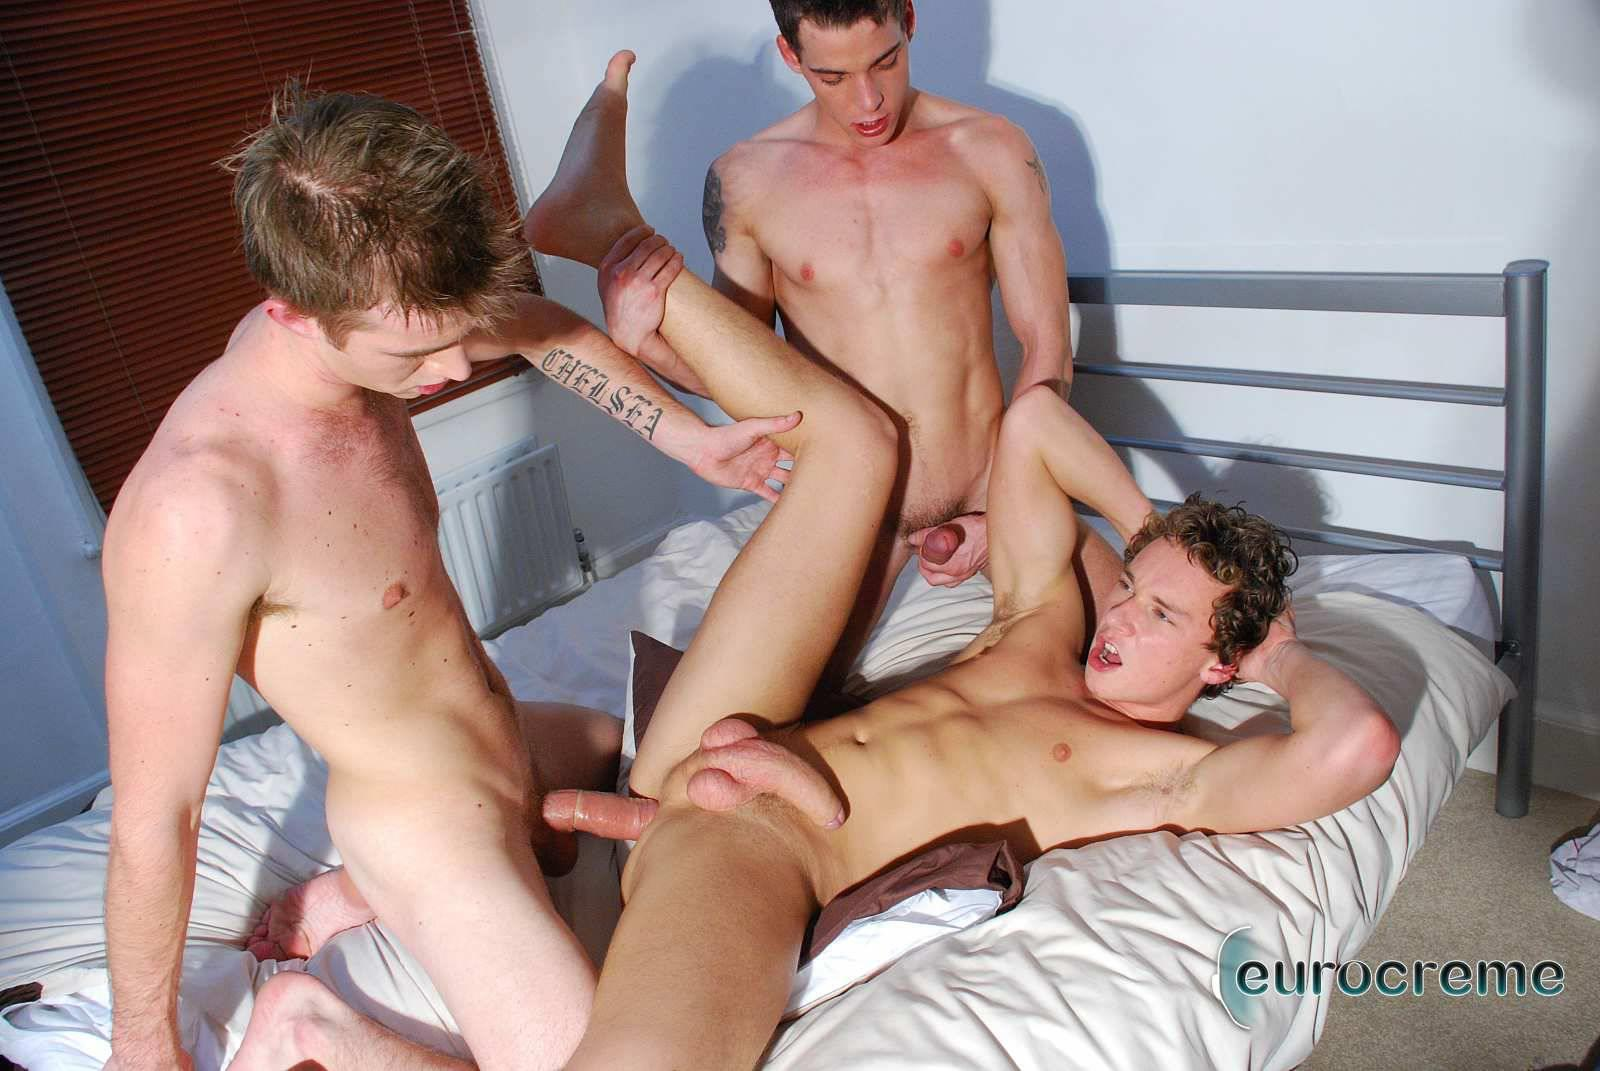 Eurocreme-Matt-Hughes-and-Alex-Stevens-and-Philipe-Delvaux-Twinks-Fucking-Amateur-Gay-Porn-17 Matt Hughes Uses His 11-Inch Uncut Cock On Two Tricks